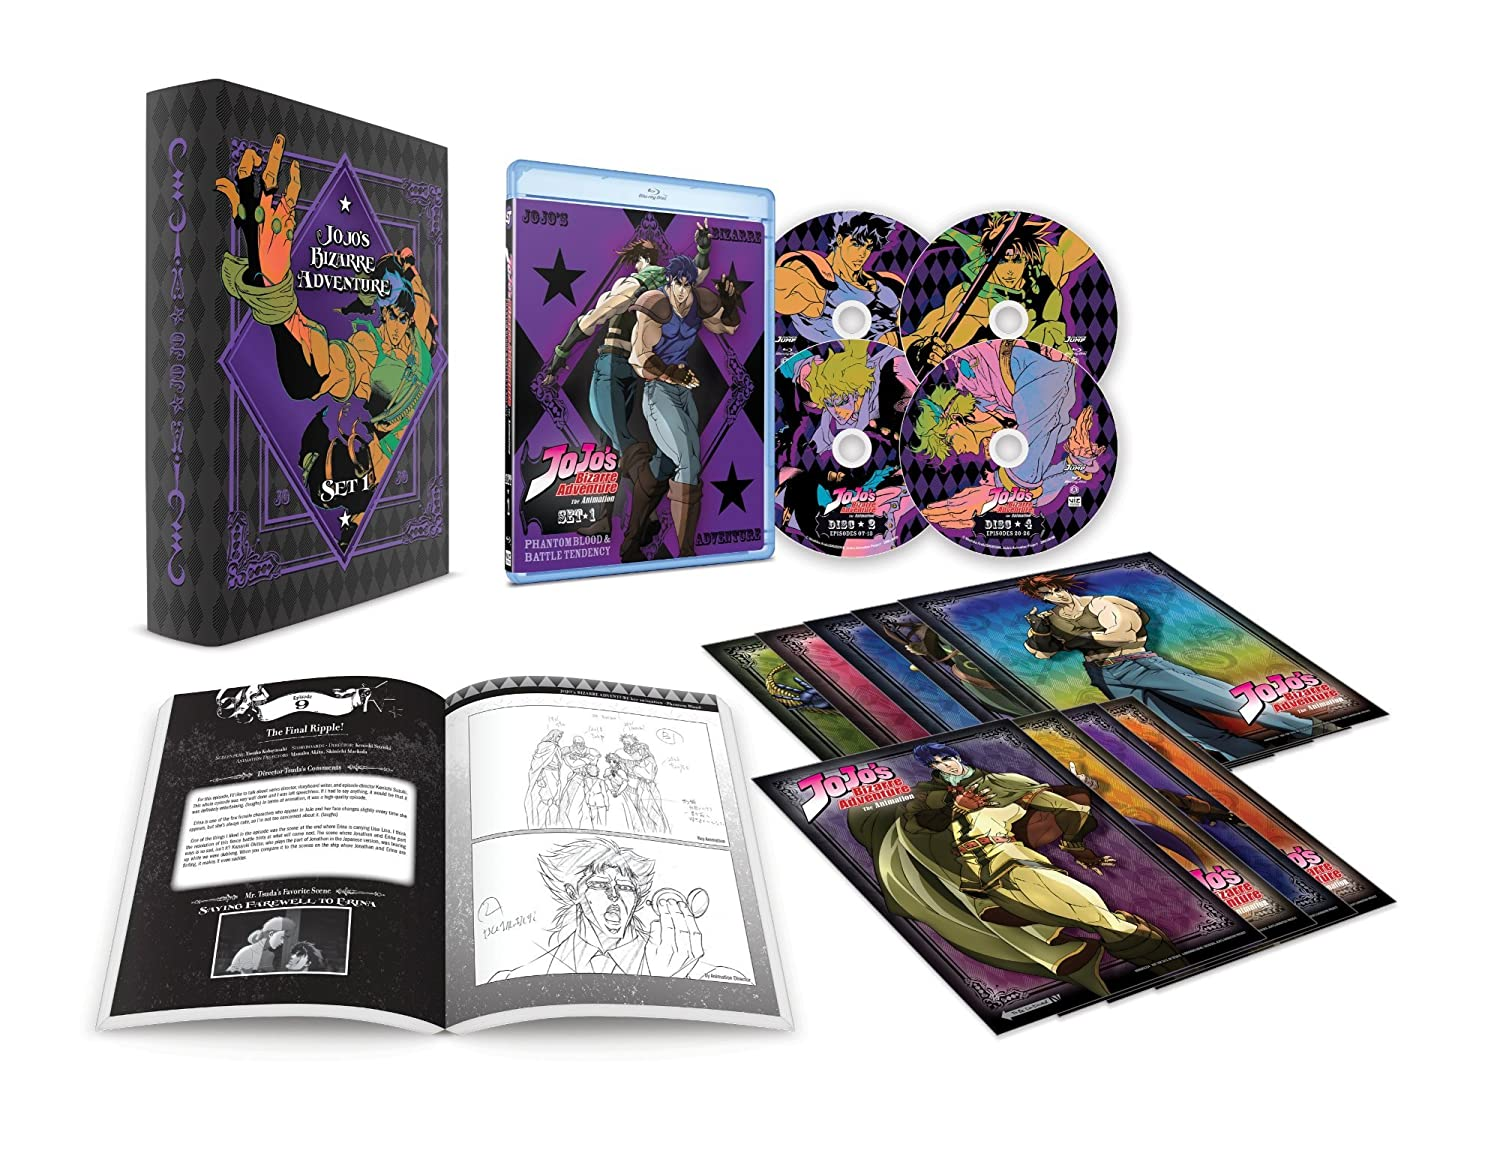 Amazon com: JoJo's Bizarre Adventure Set 1: Phantom Blood